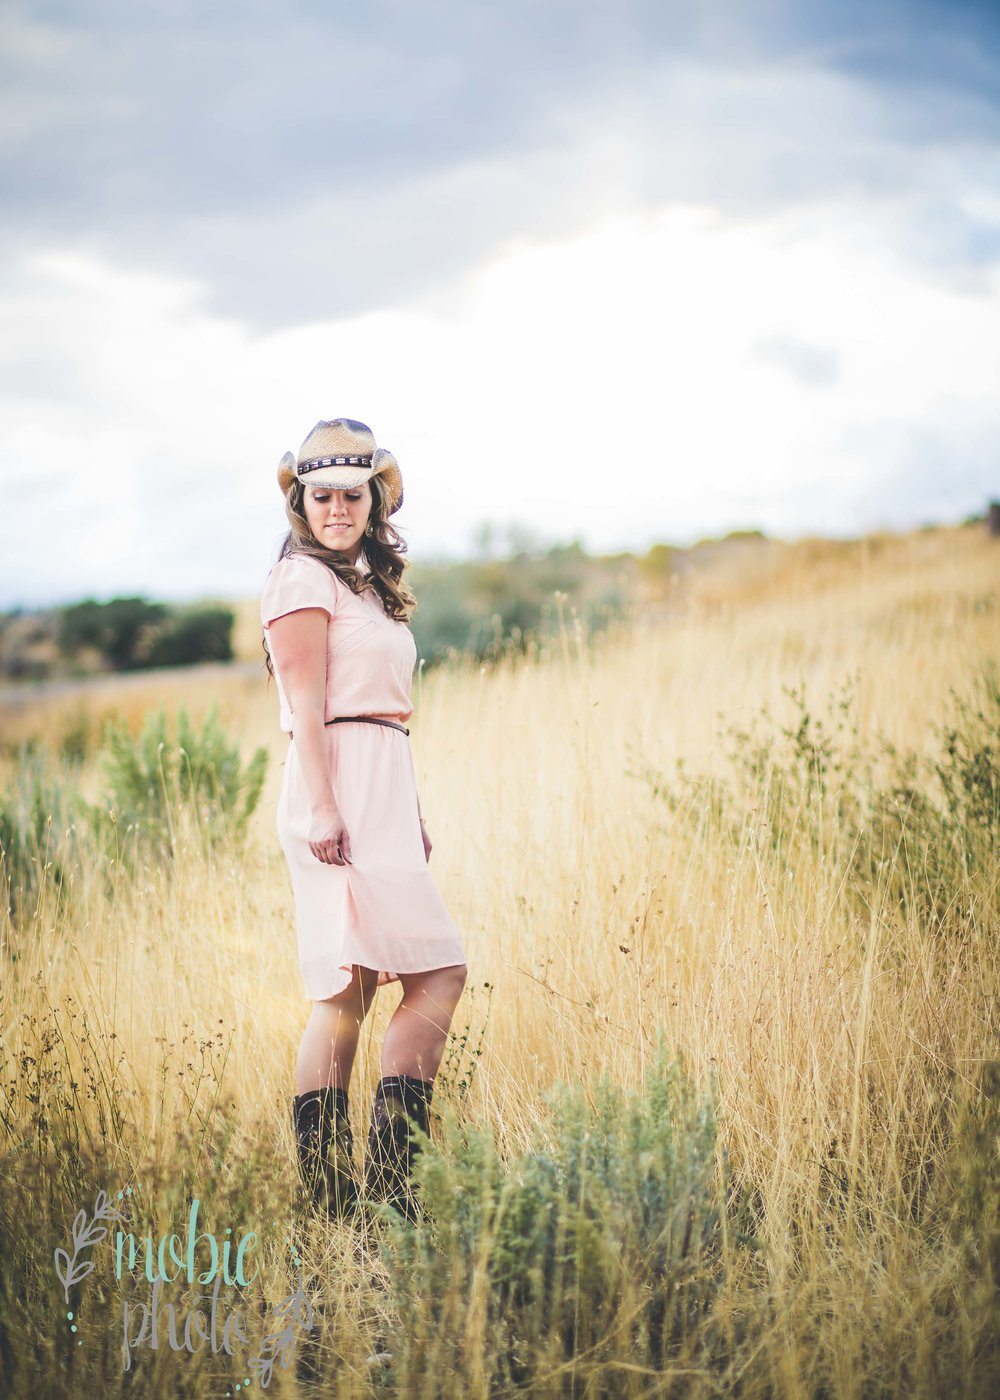 Cowgirl picture in field